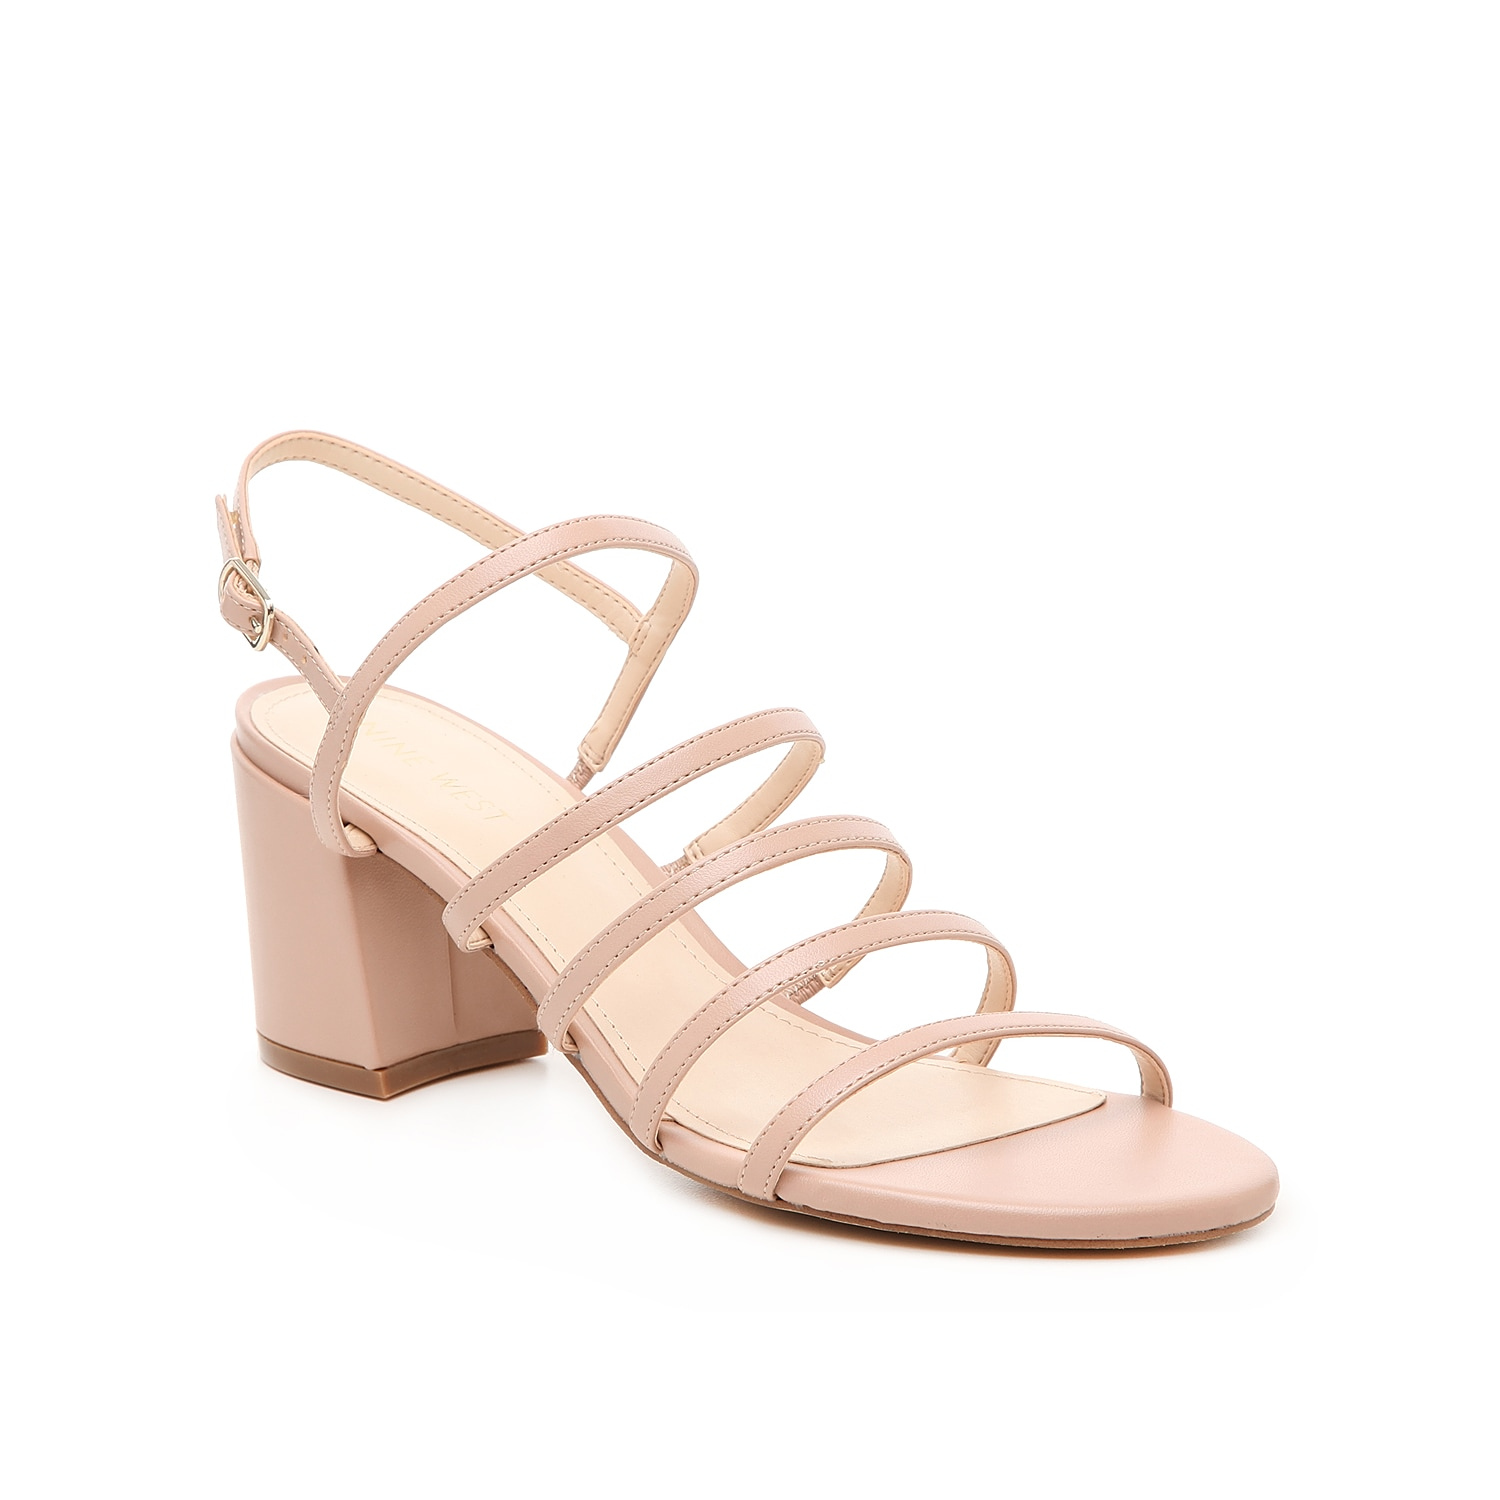 The Unique sandals from Nine West are the perfect barely there shoes! The lightly cushioned insole and block heel will give you support and stability through all your events!